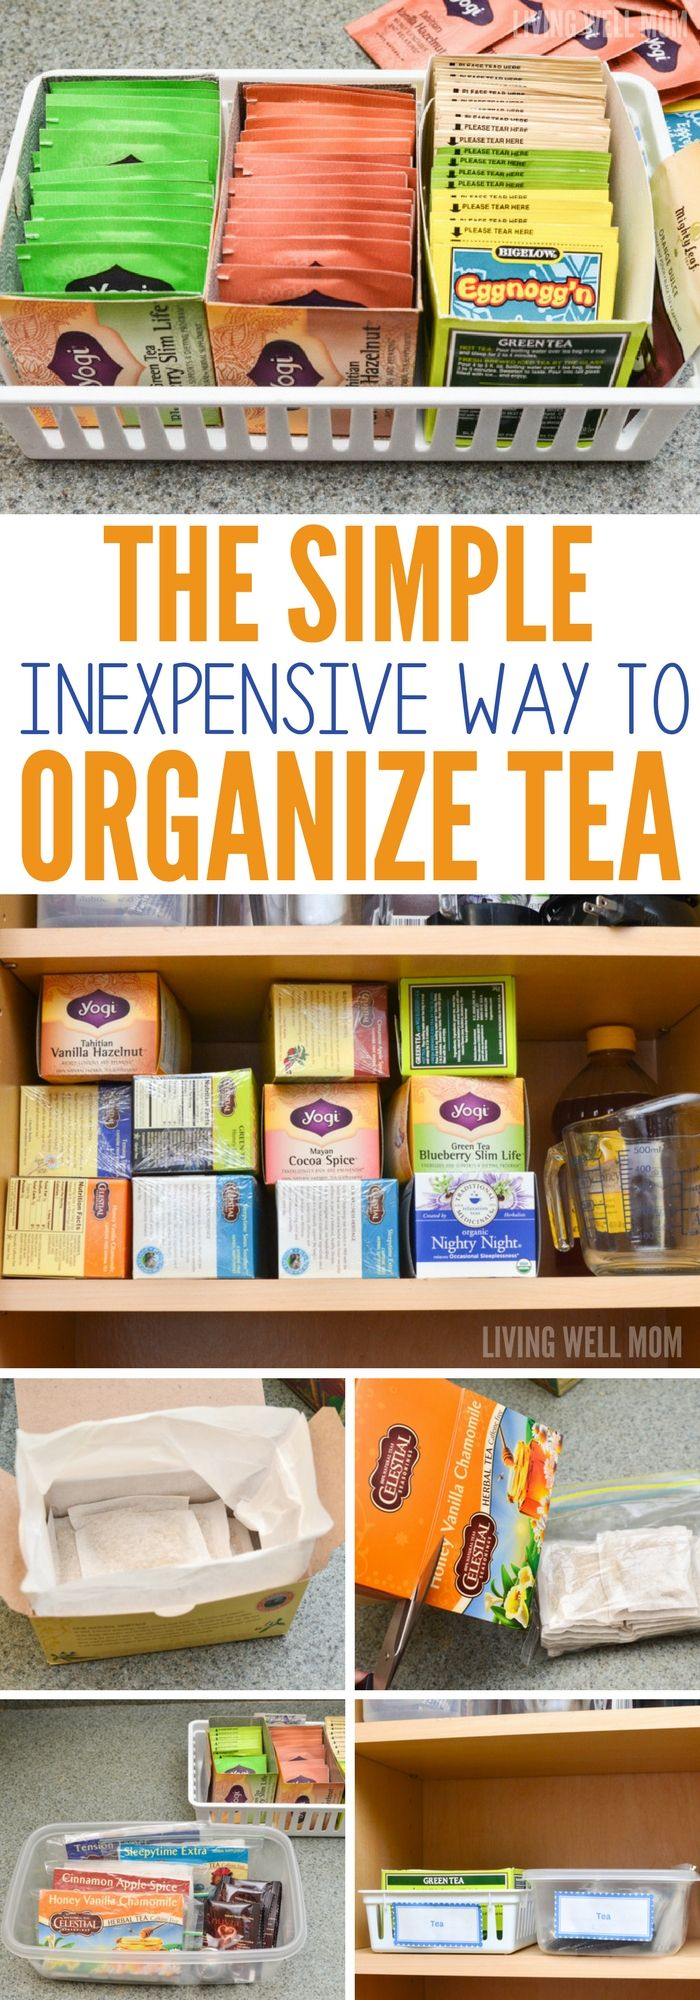 The Simple, Inexpensive Way to Organize Tea | Cupboard, Organizing ...